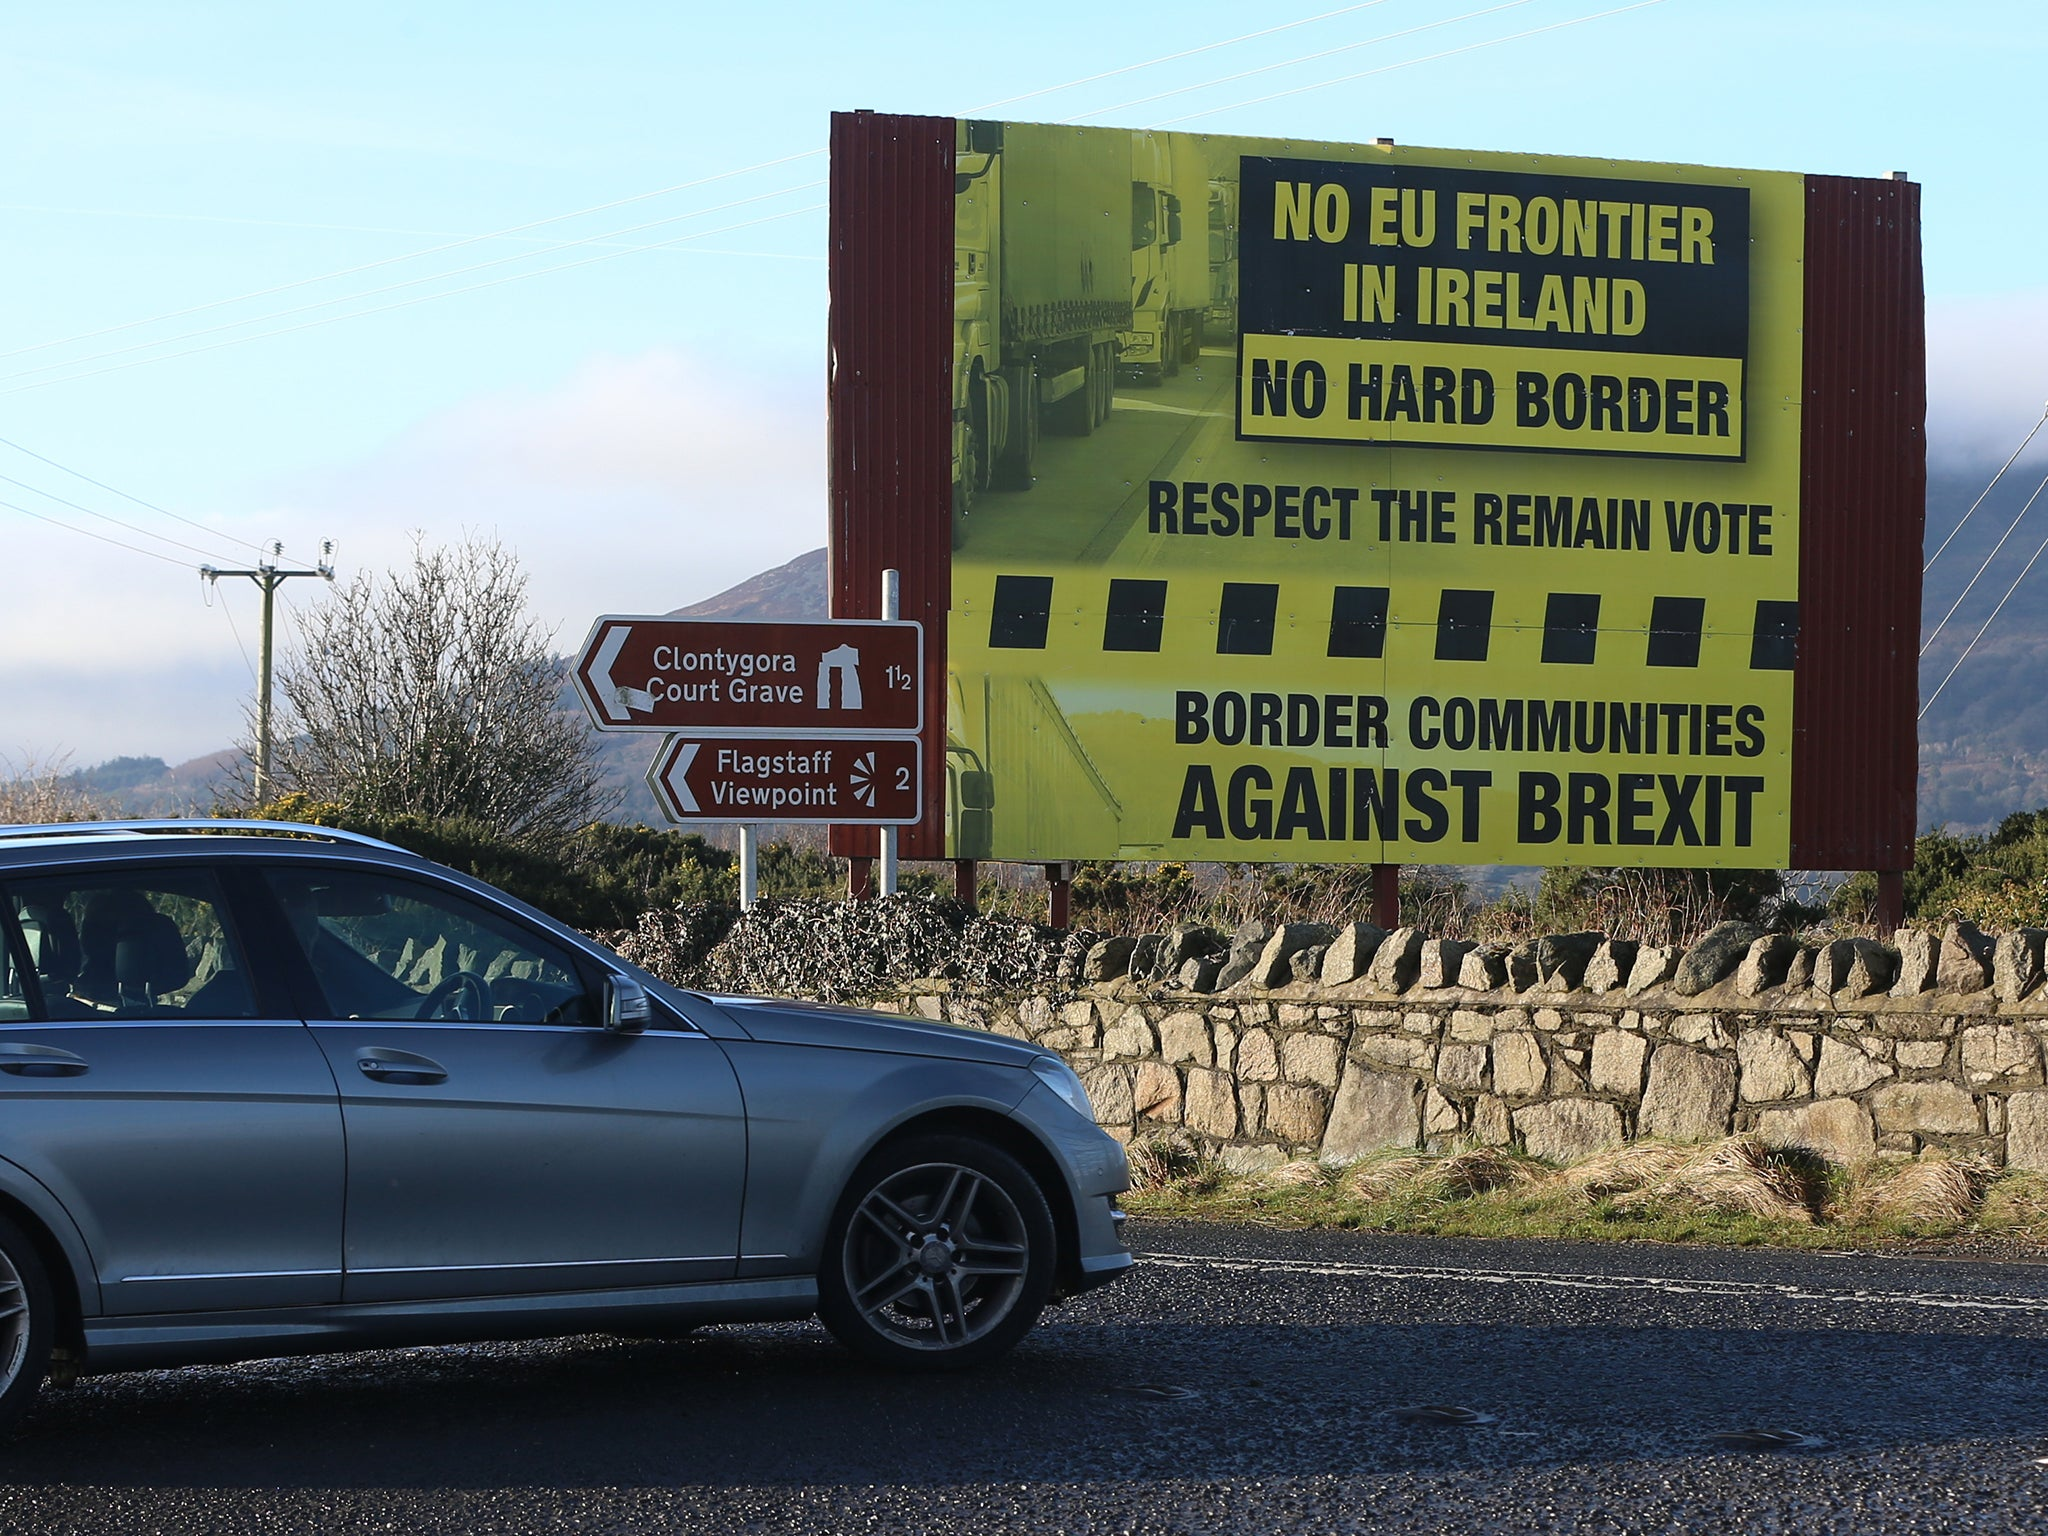 Theresa May 'to insist on Northern Ireland border checks post-Brexit' in move likely to anger the Republic